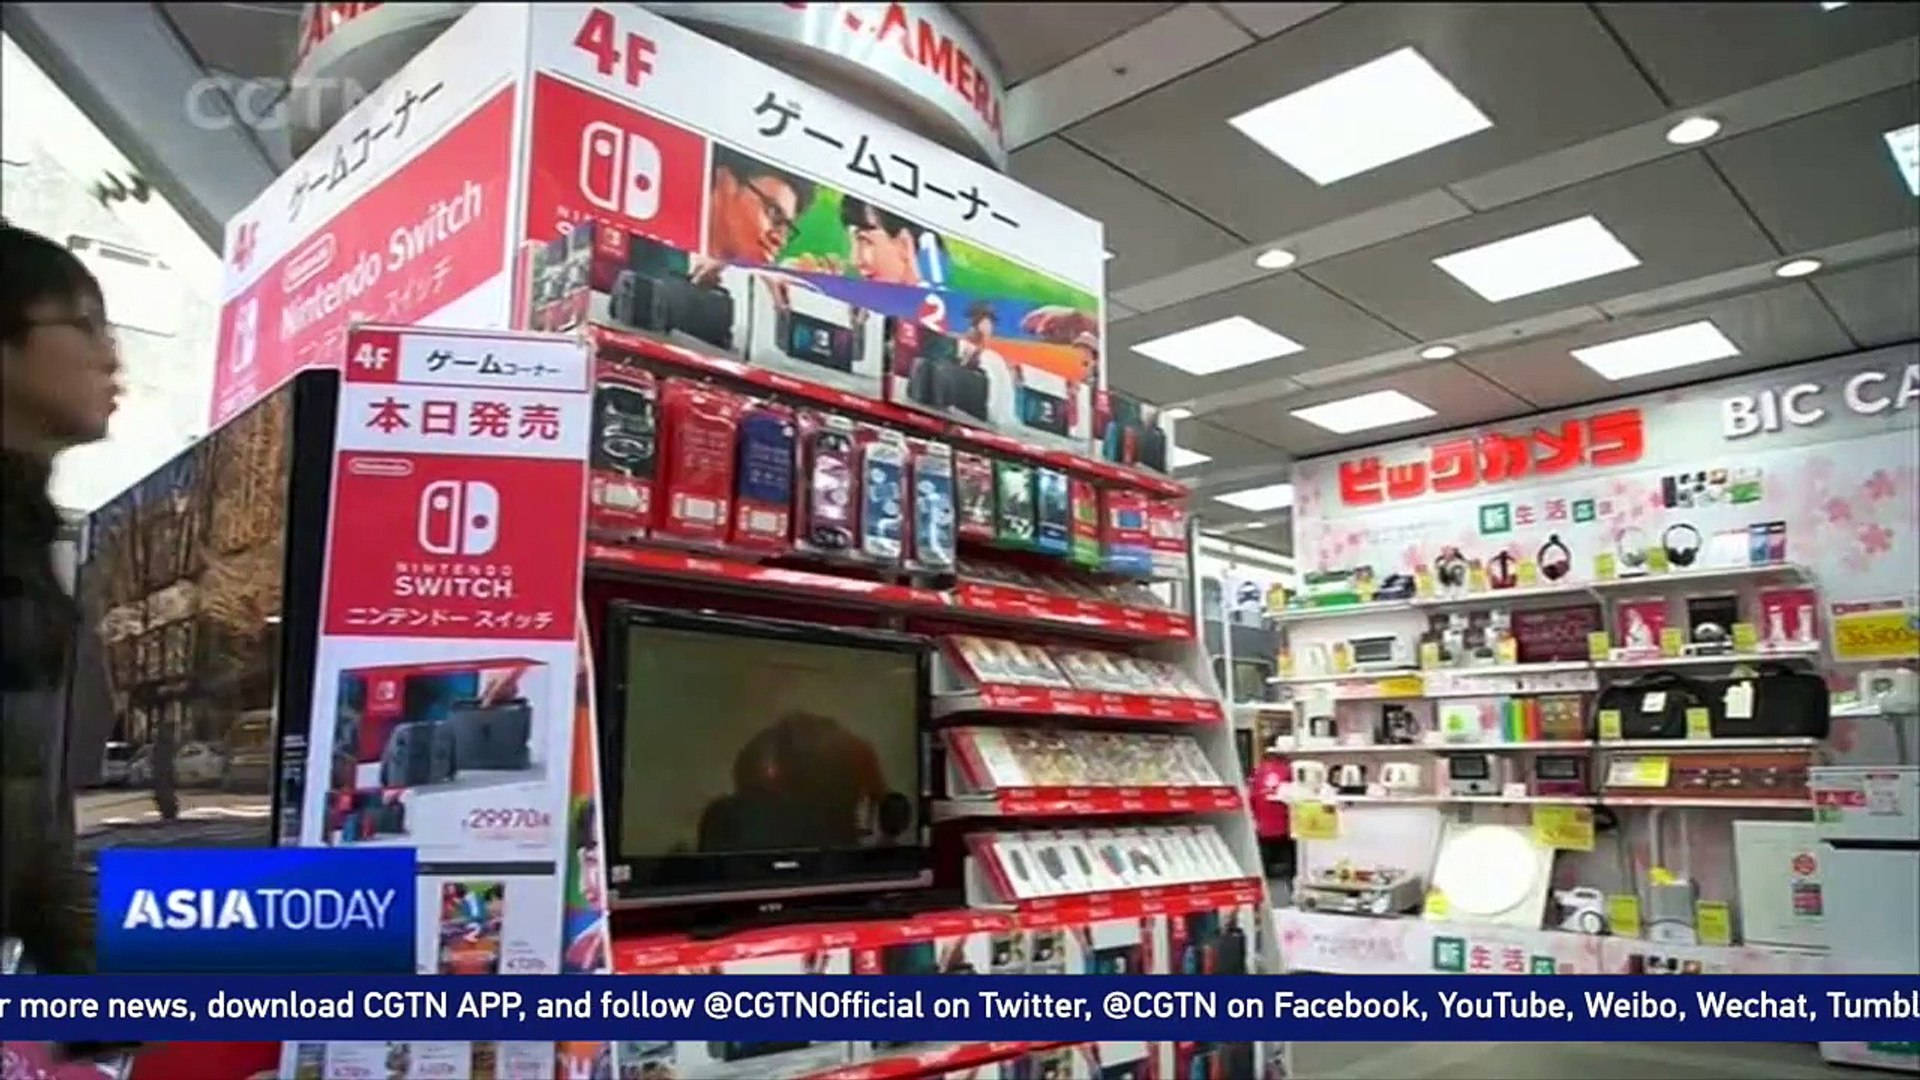 Nintendo launches new Switch game console